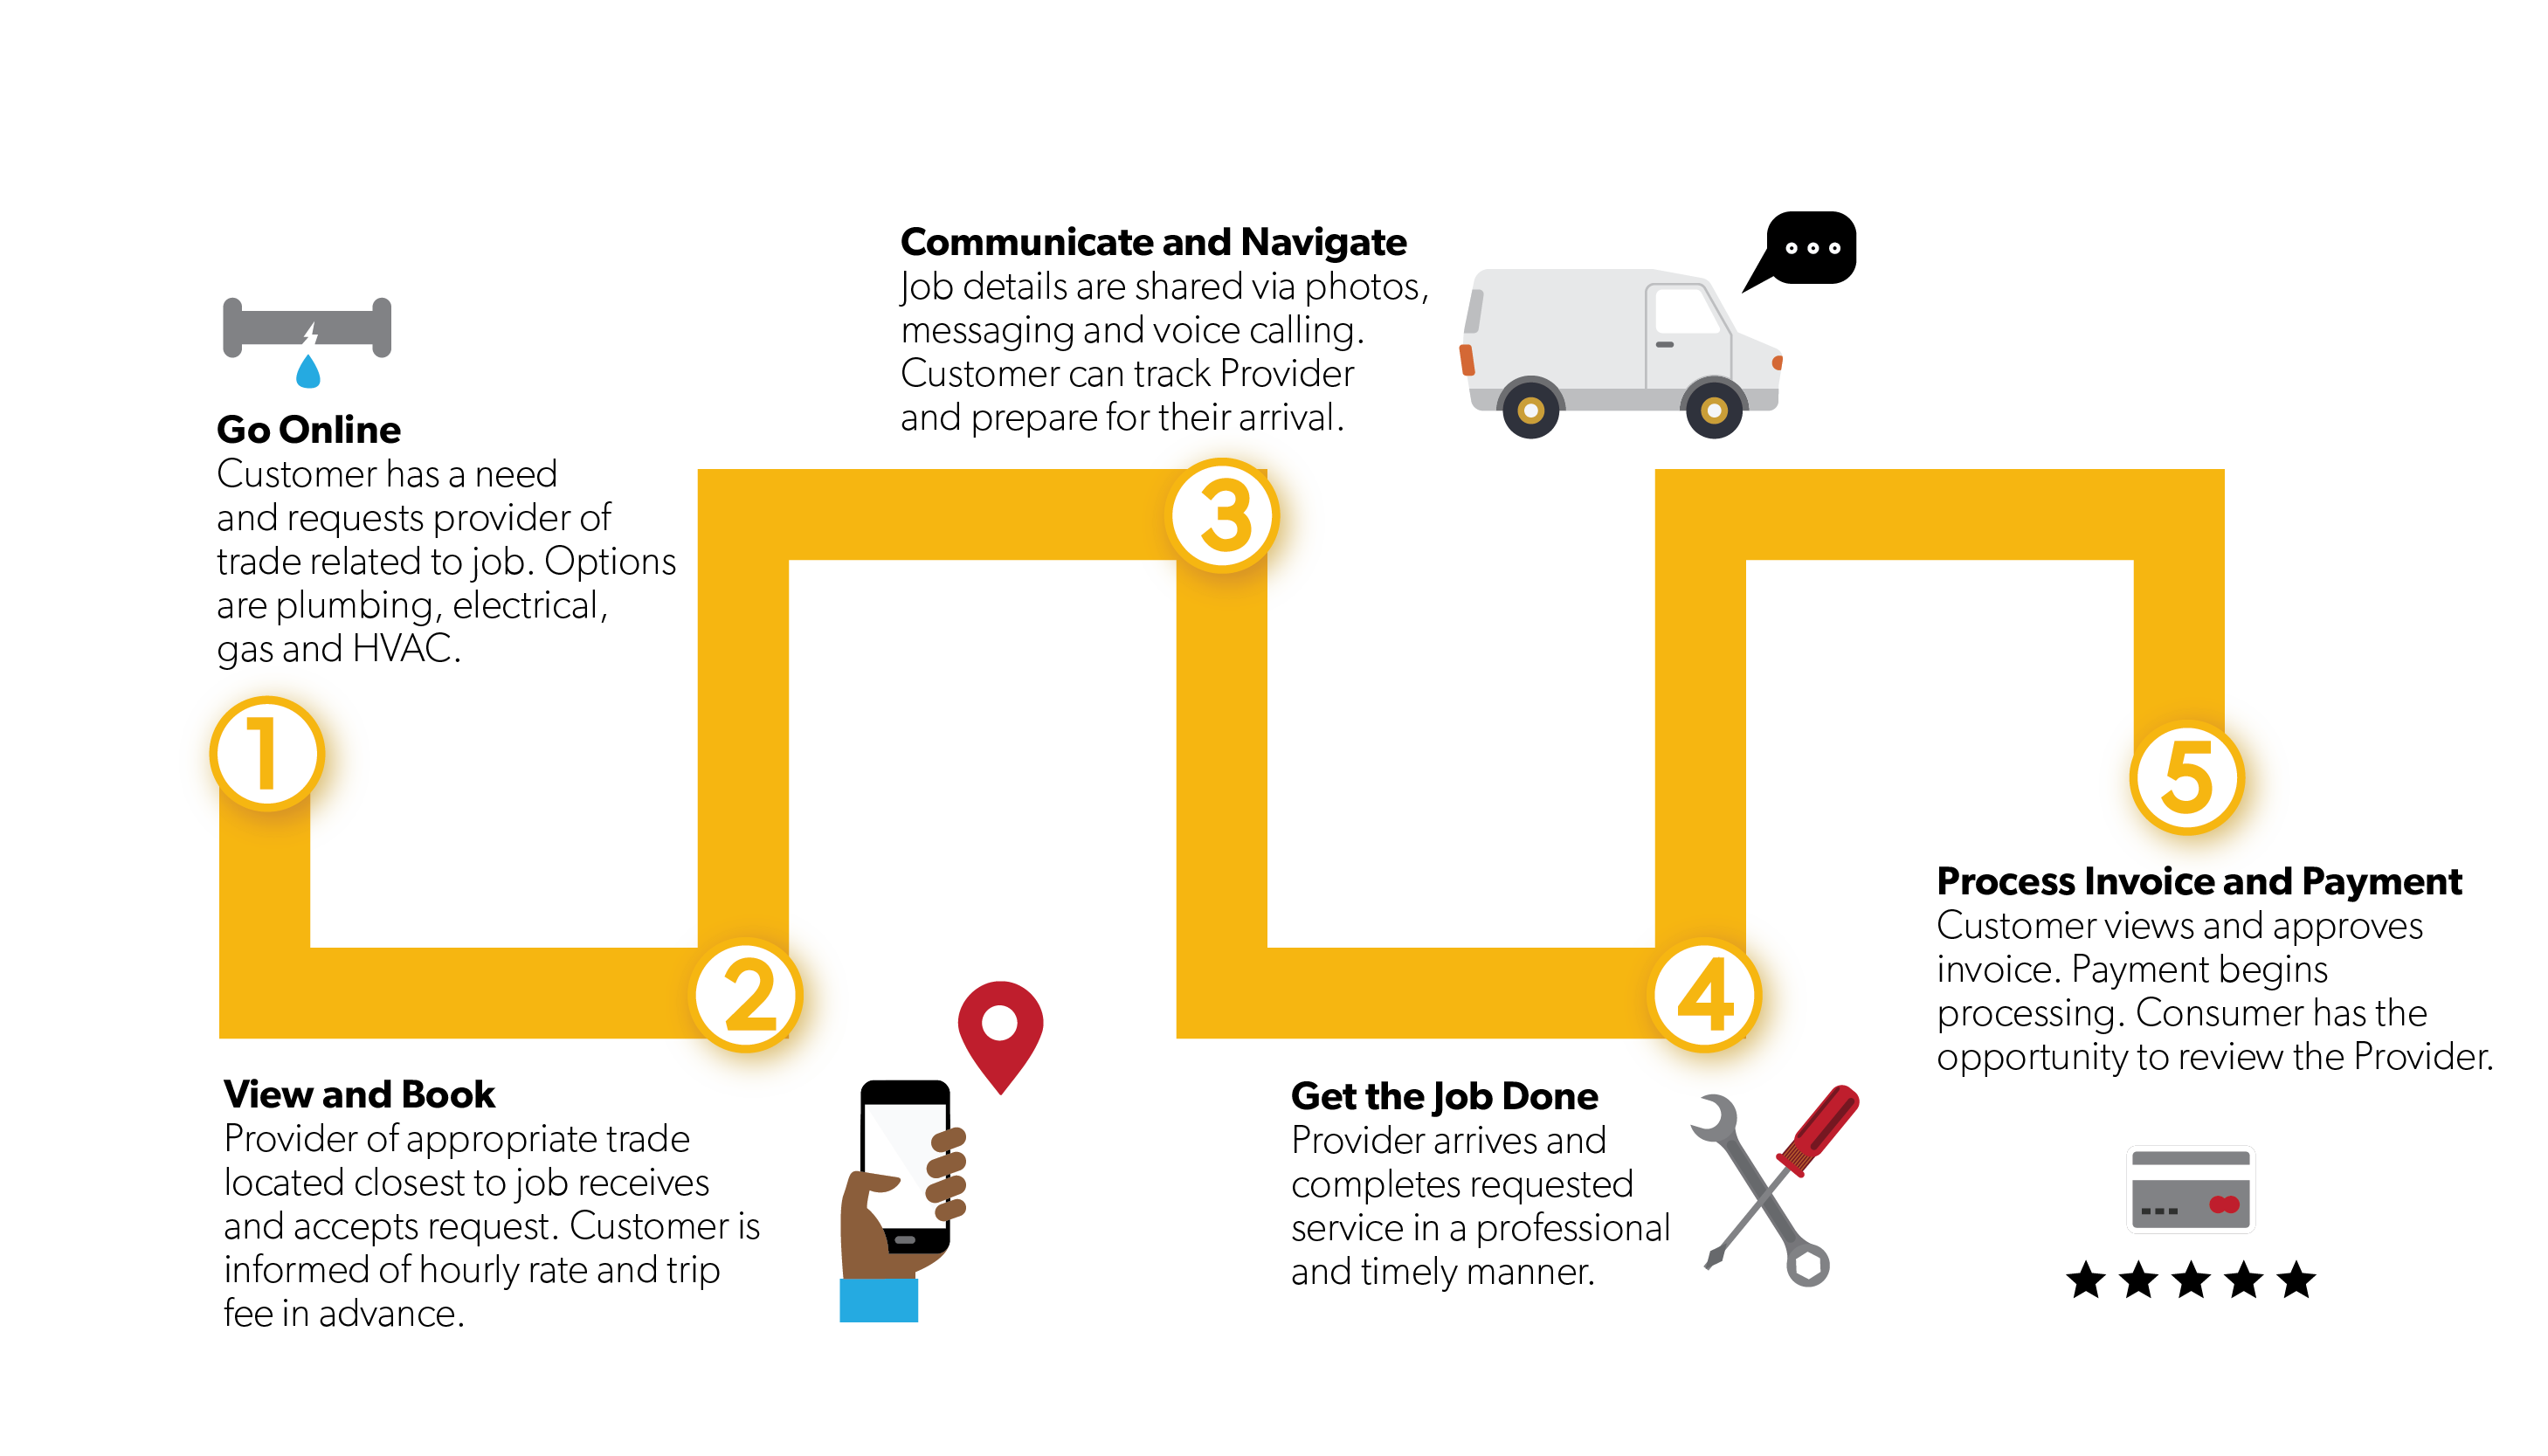 How-Repairman-App-Works-infographic